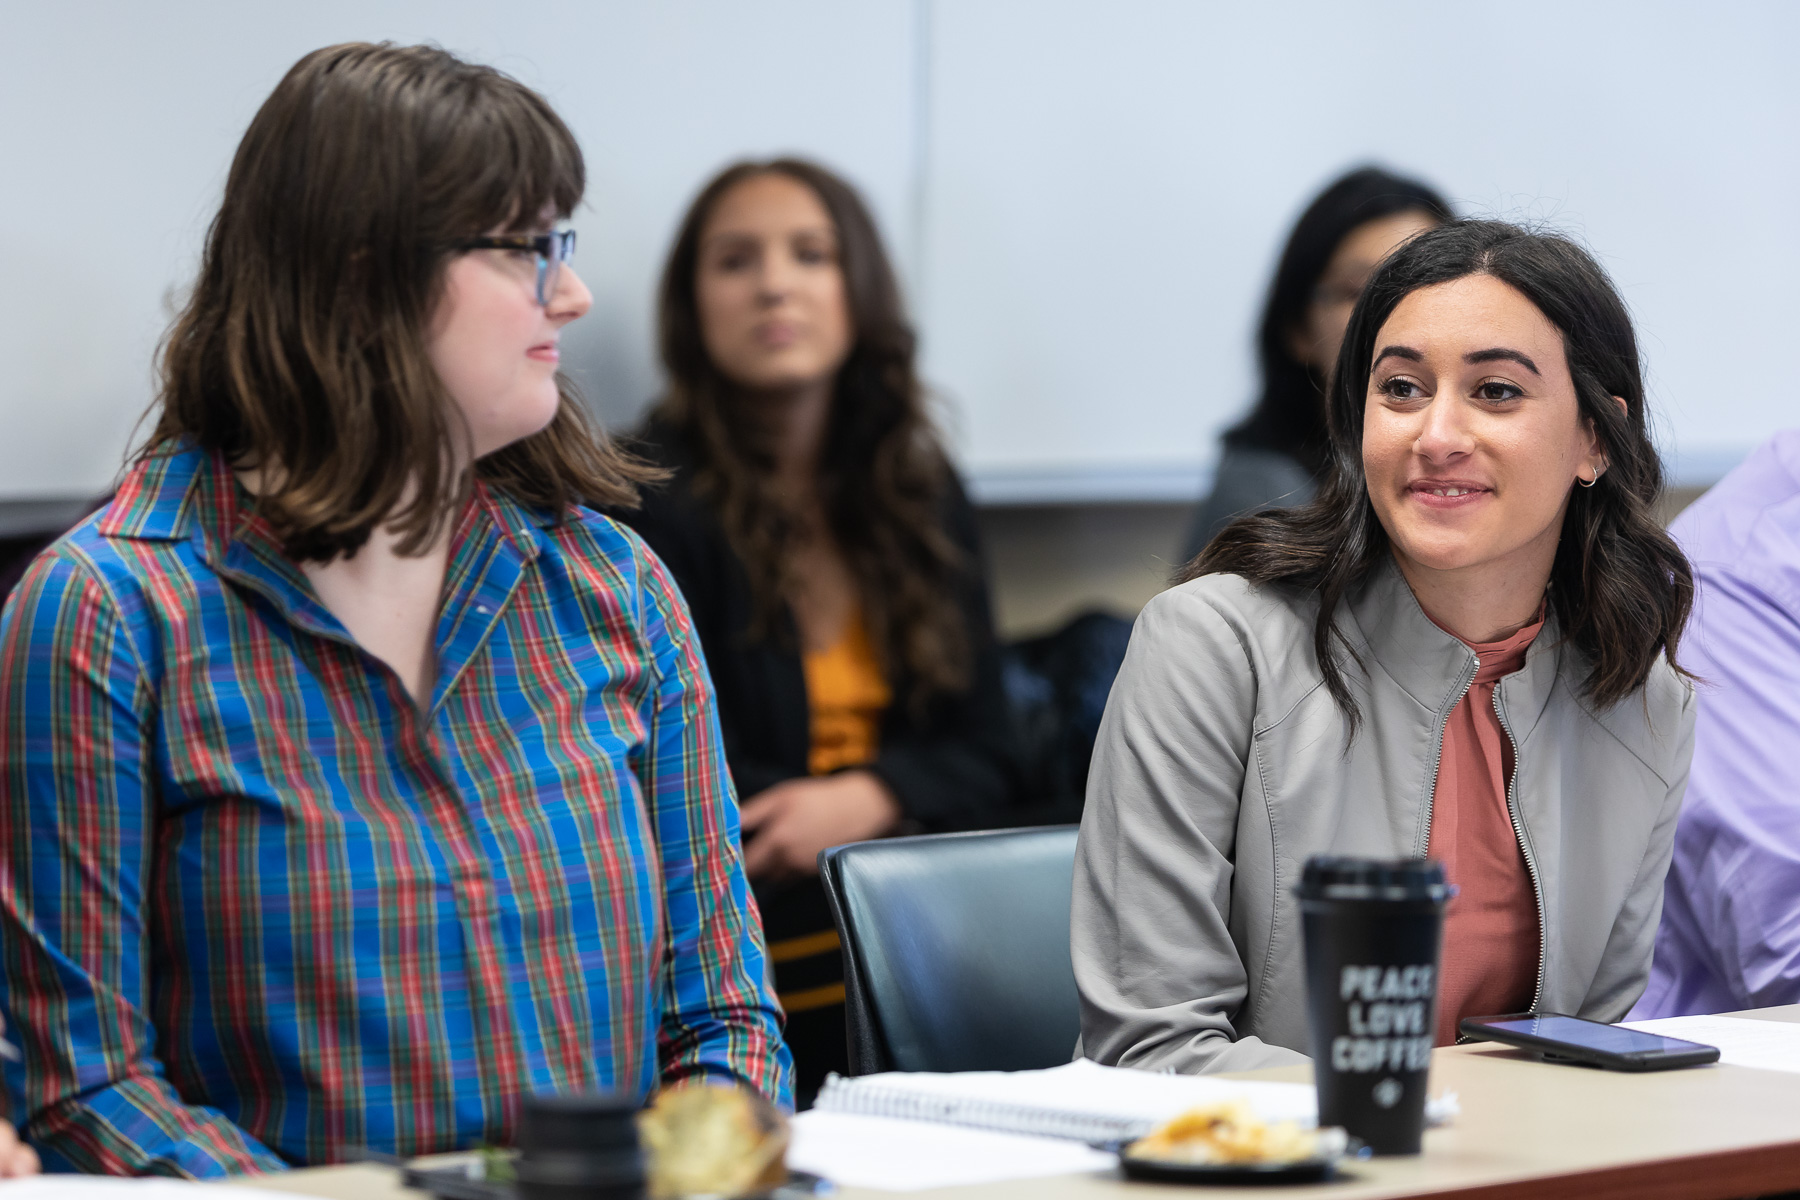 A students asks a question to Lourdes Duarte and Dean Baquet during a meeting between the journalists and College of Communications journalism students. (DePaul University/Jeff Carrion)